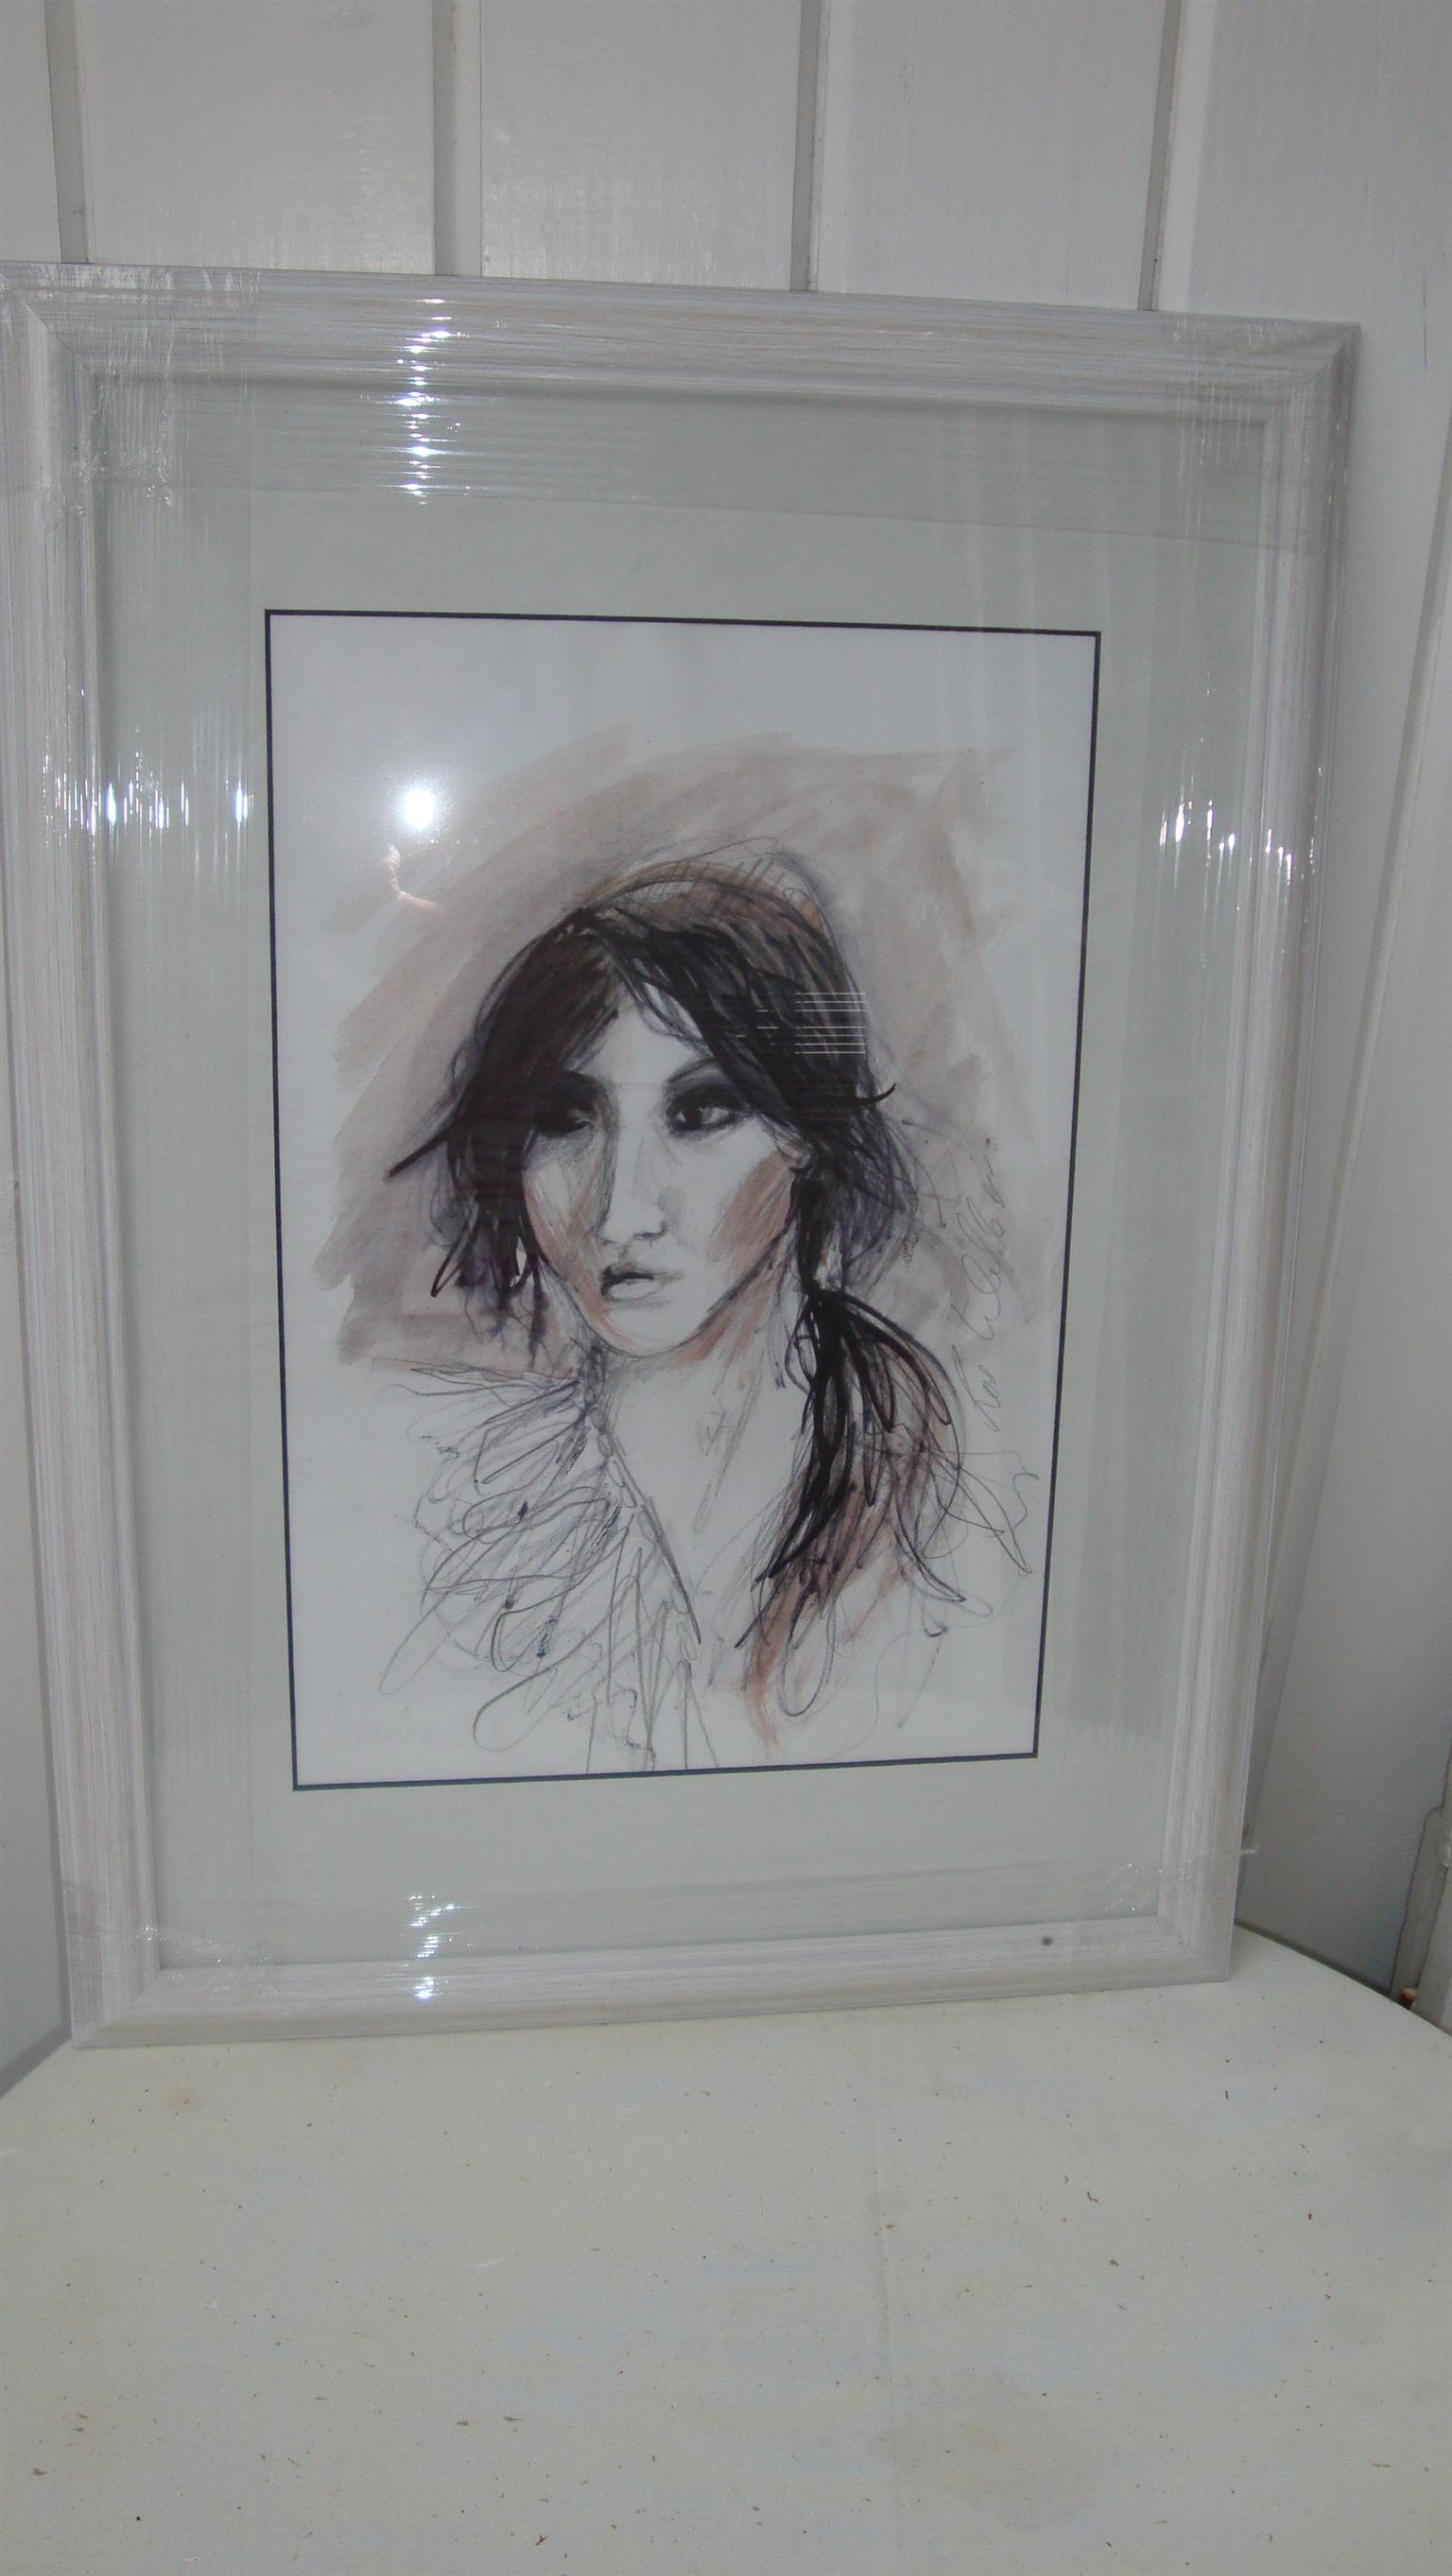 Affordable, original and framed art by Irish artist Ros Webb - girl with long black hair